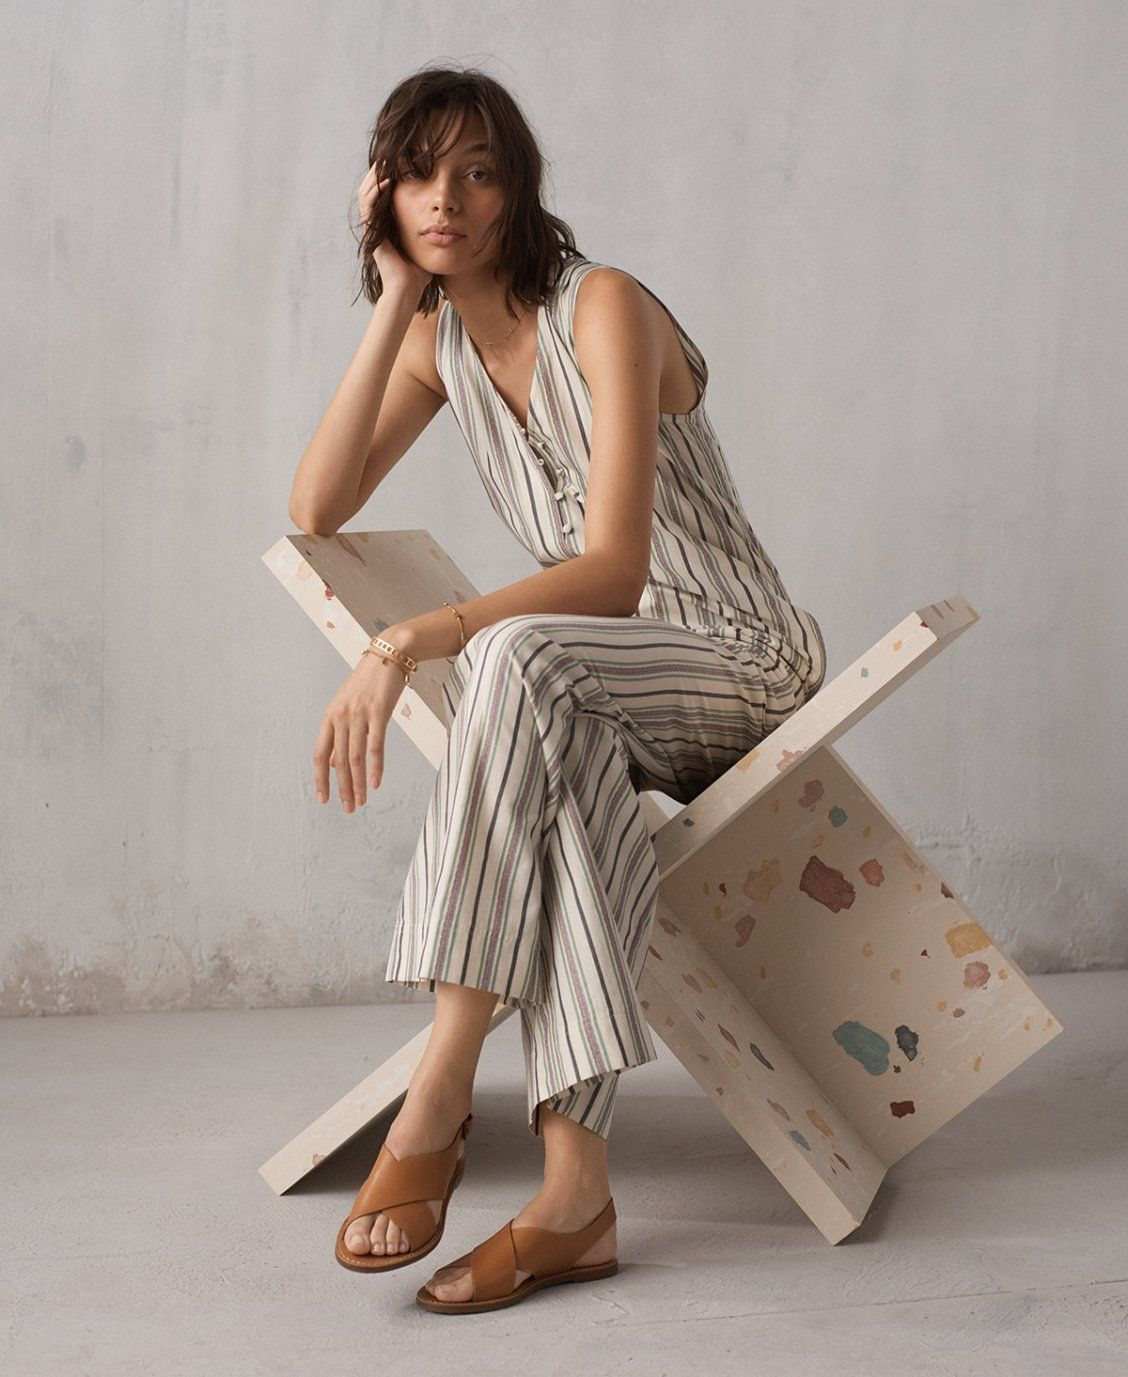 d9616fe3 madewell striped button-down jumpsuit worn with the boardwalk crossover  sandal